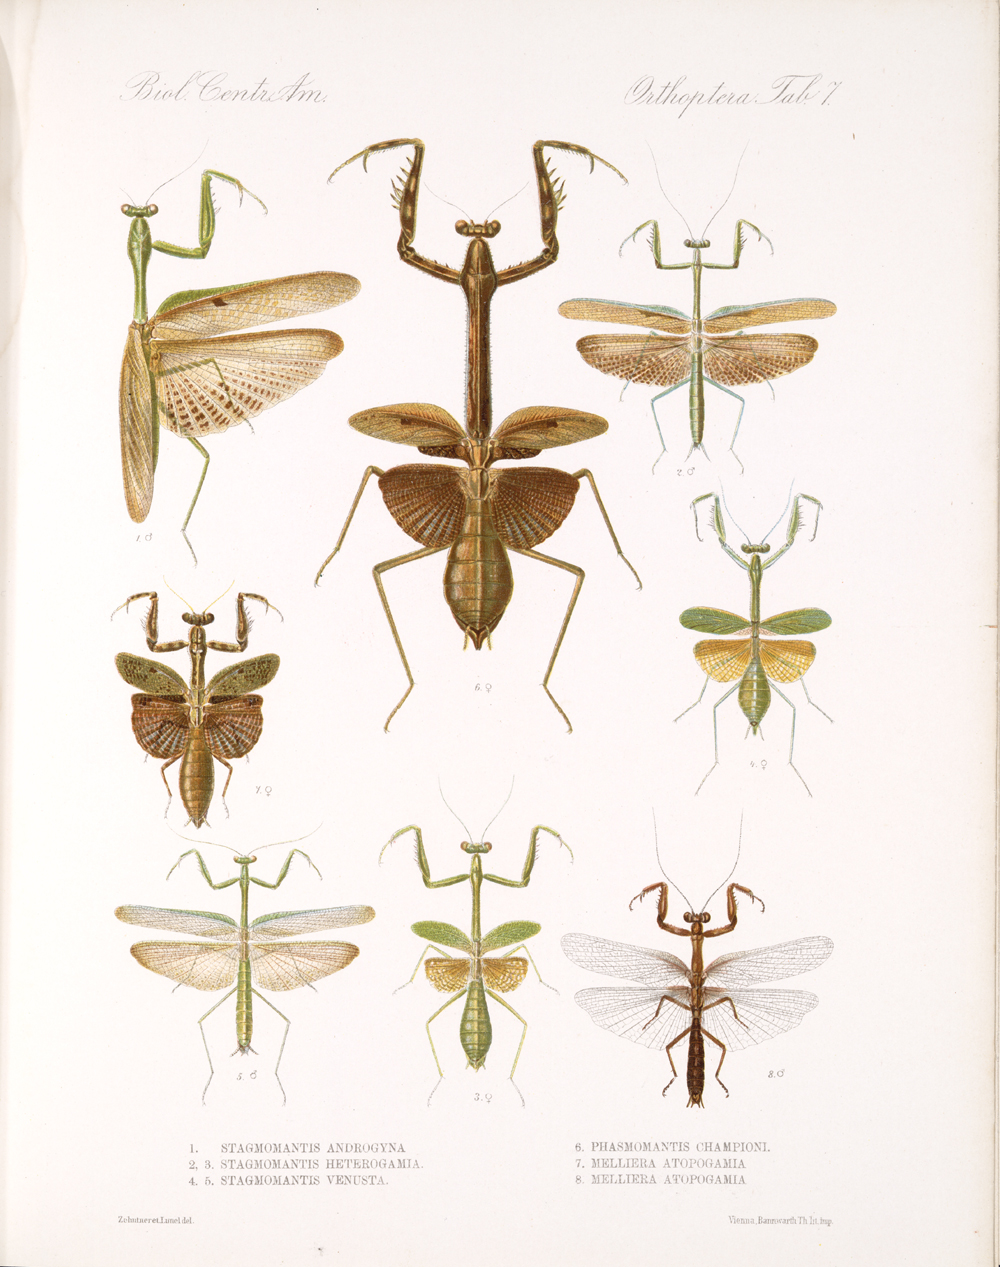 Grasshoppers and Related Insects,  Image number:bca_20_01_00_481